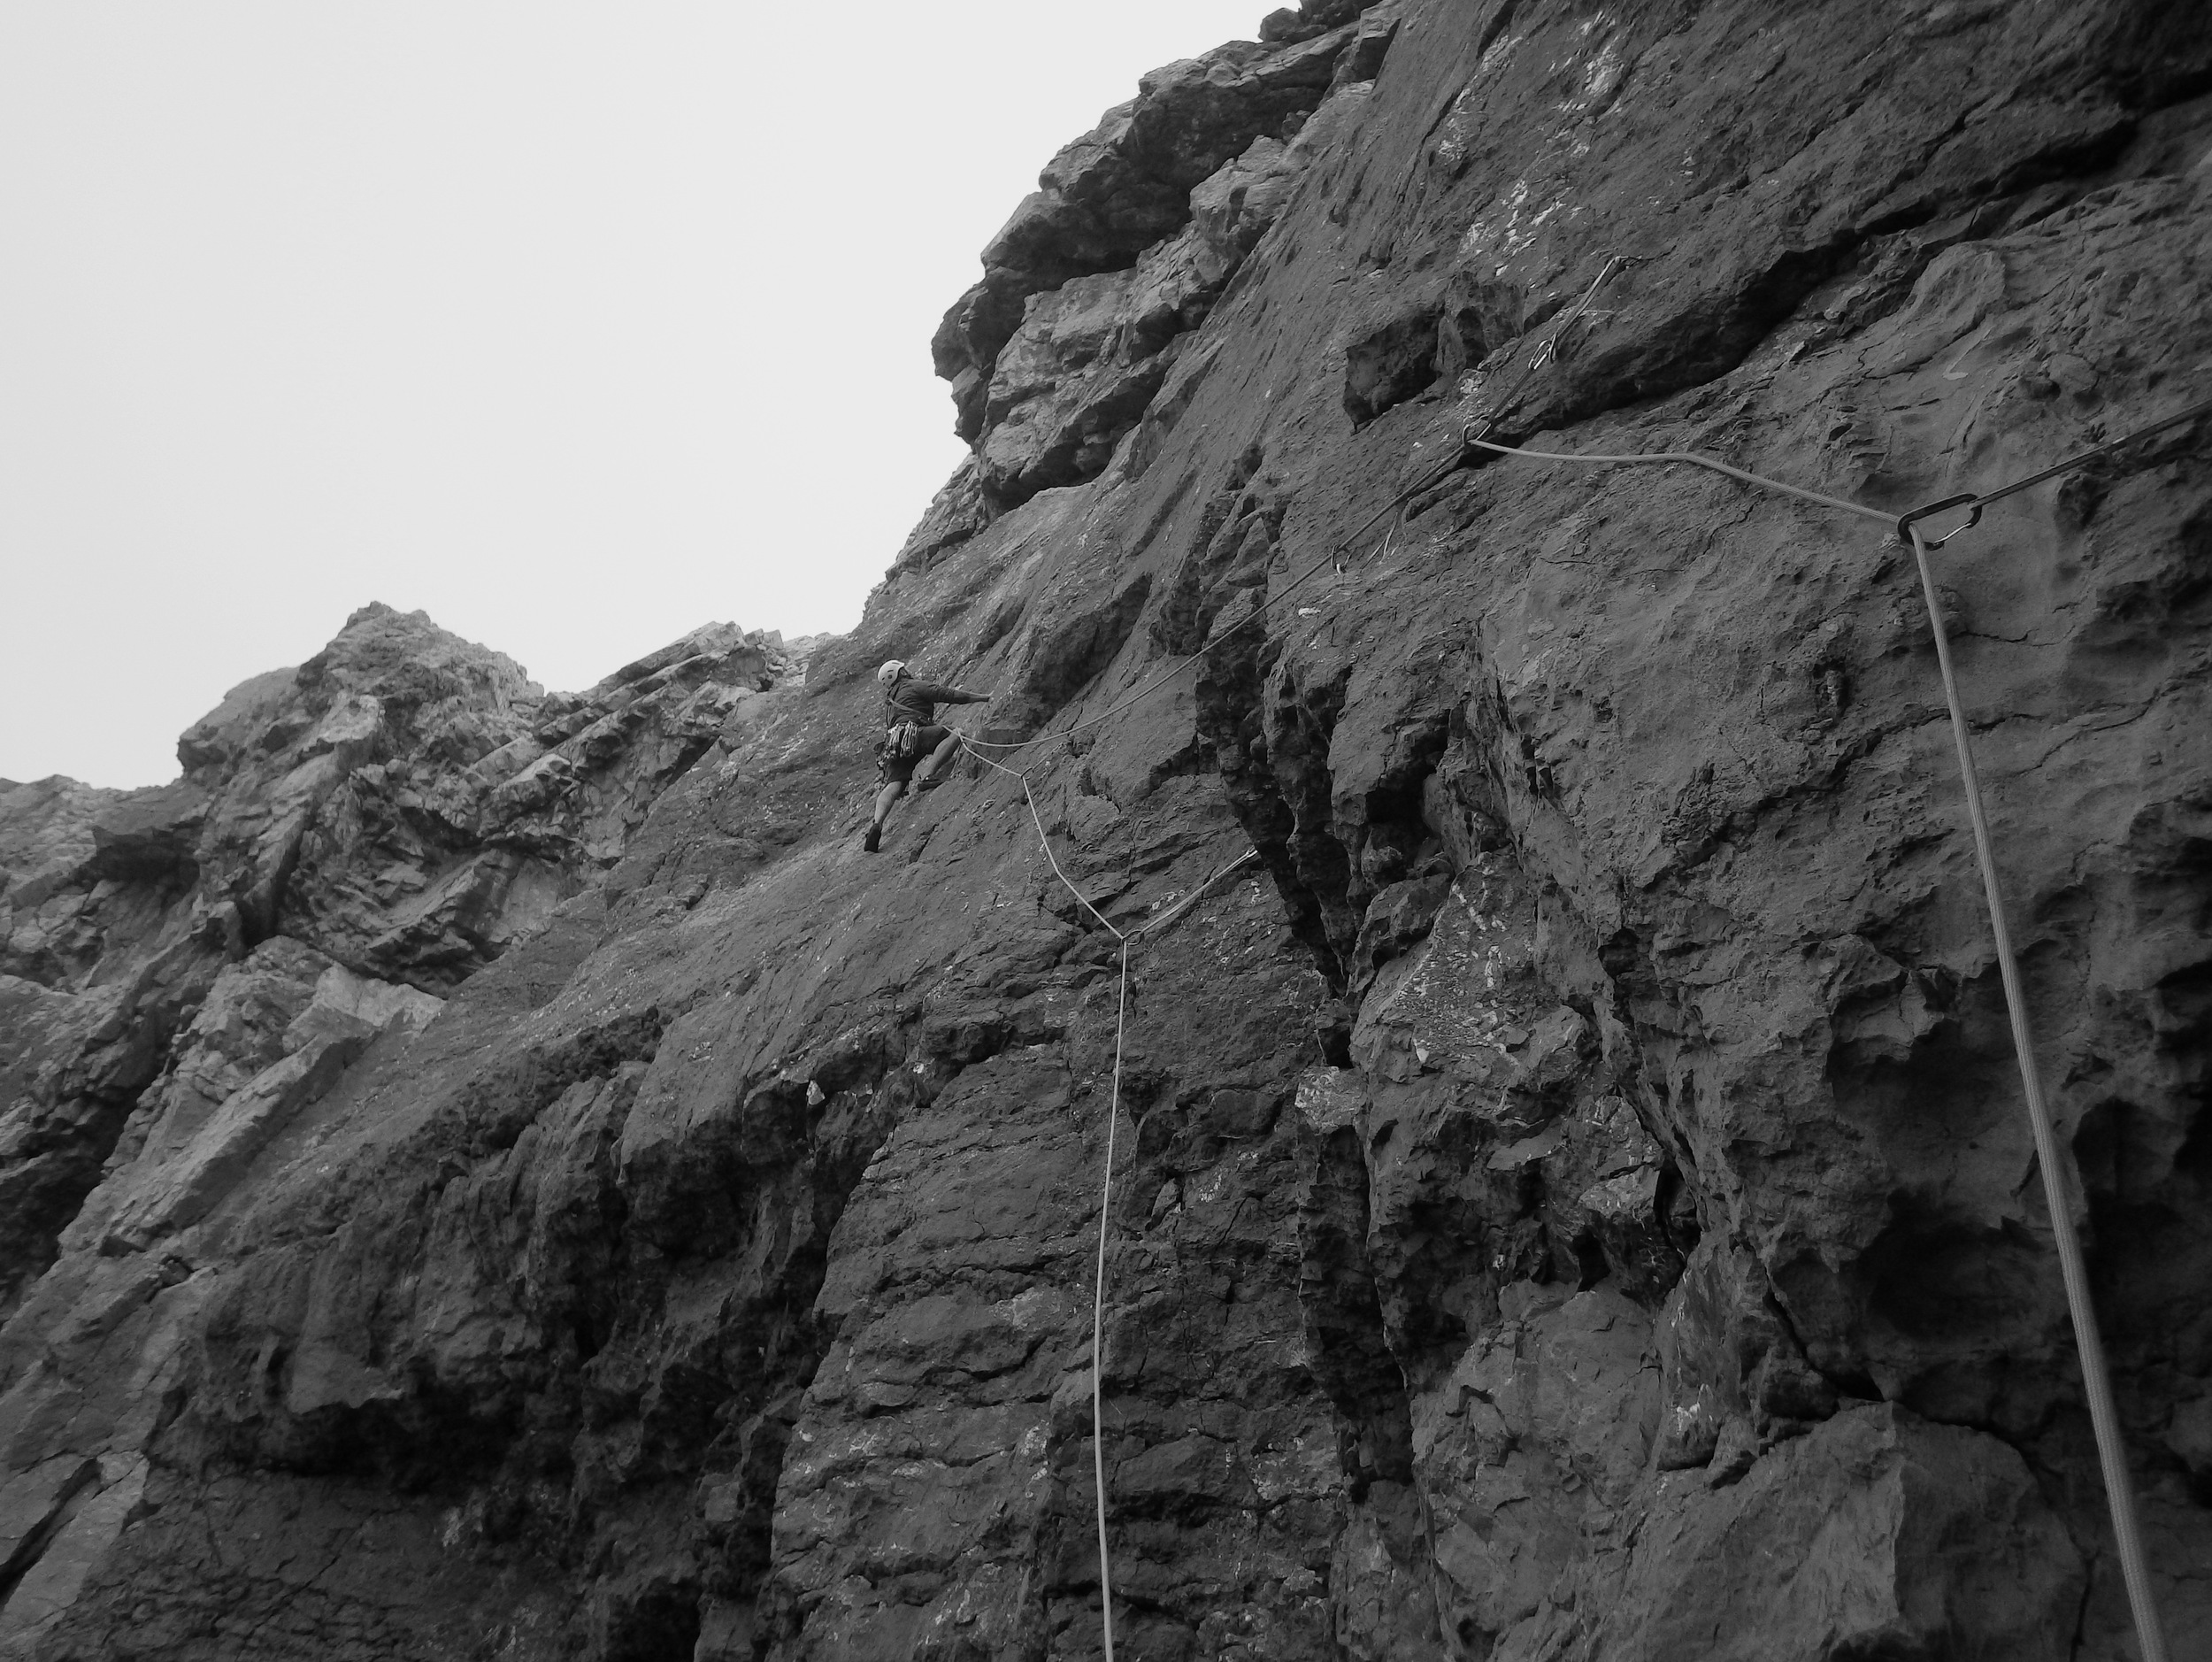 Pablo on Sensory Games, at Blockhouse Buttress